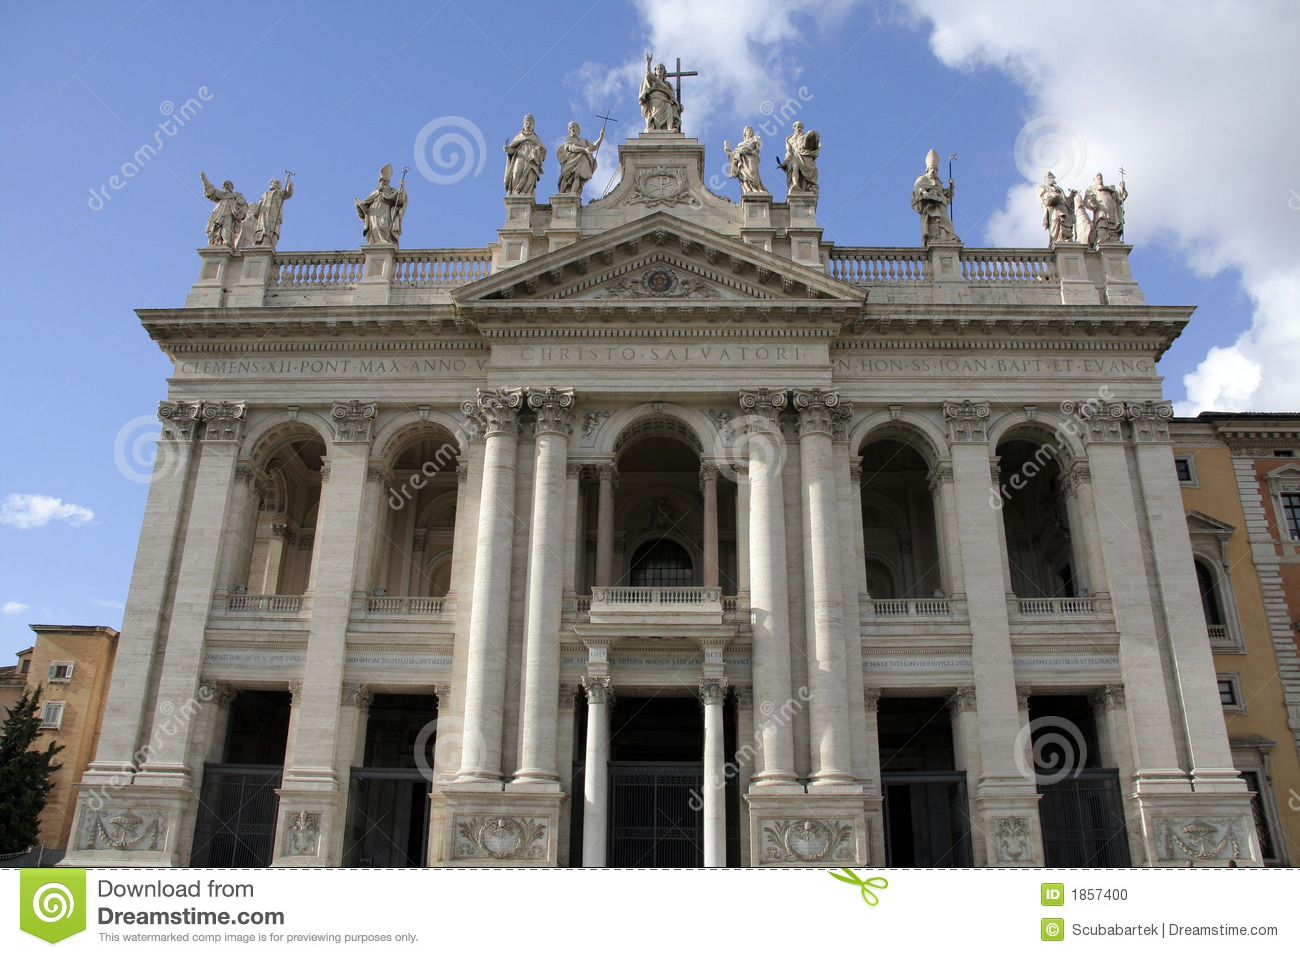 Basilica Of St. John Lateran Stock Photo - Image: 1857400